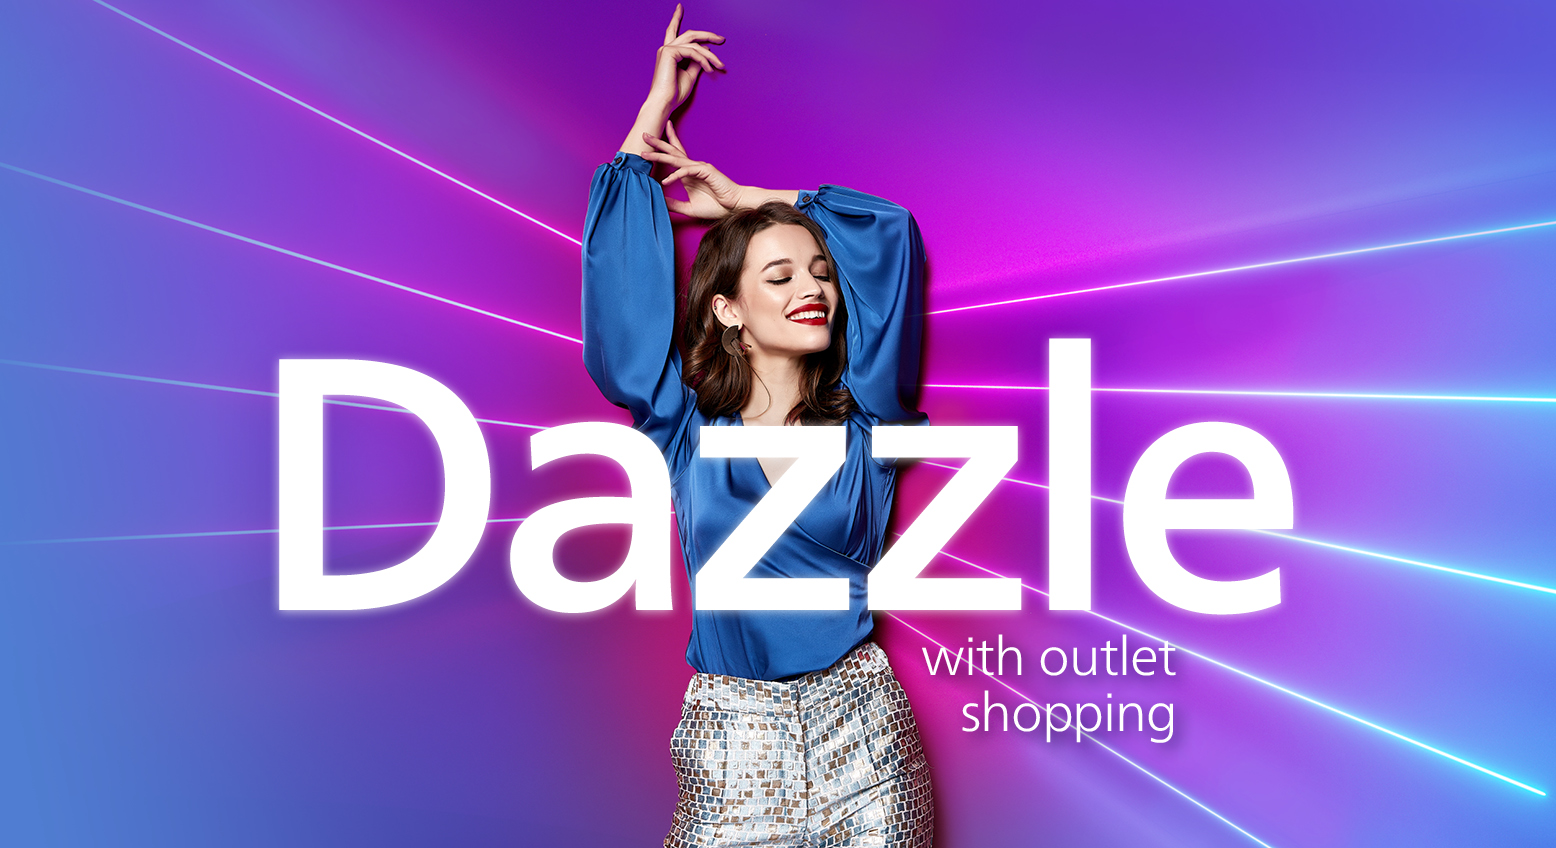 Dazzle with outlet shopping at ICON outlet shopping London